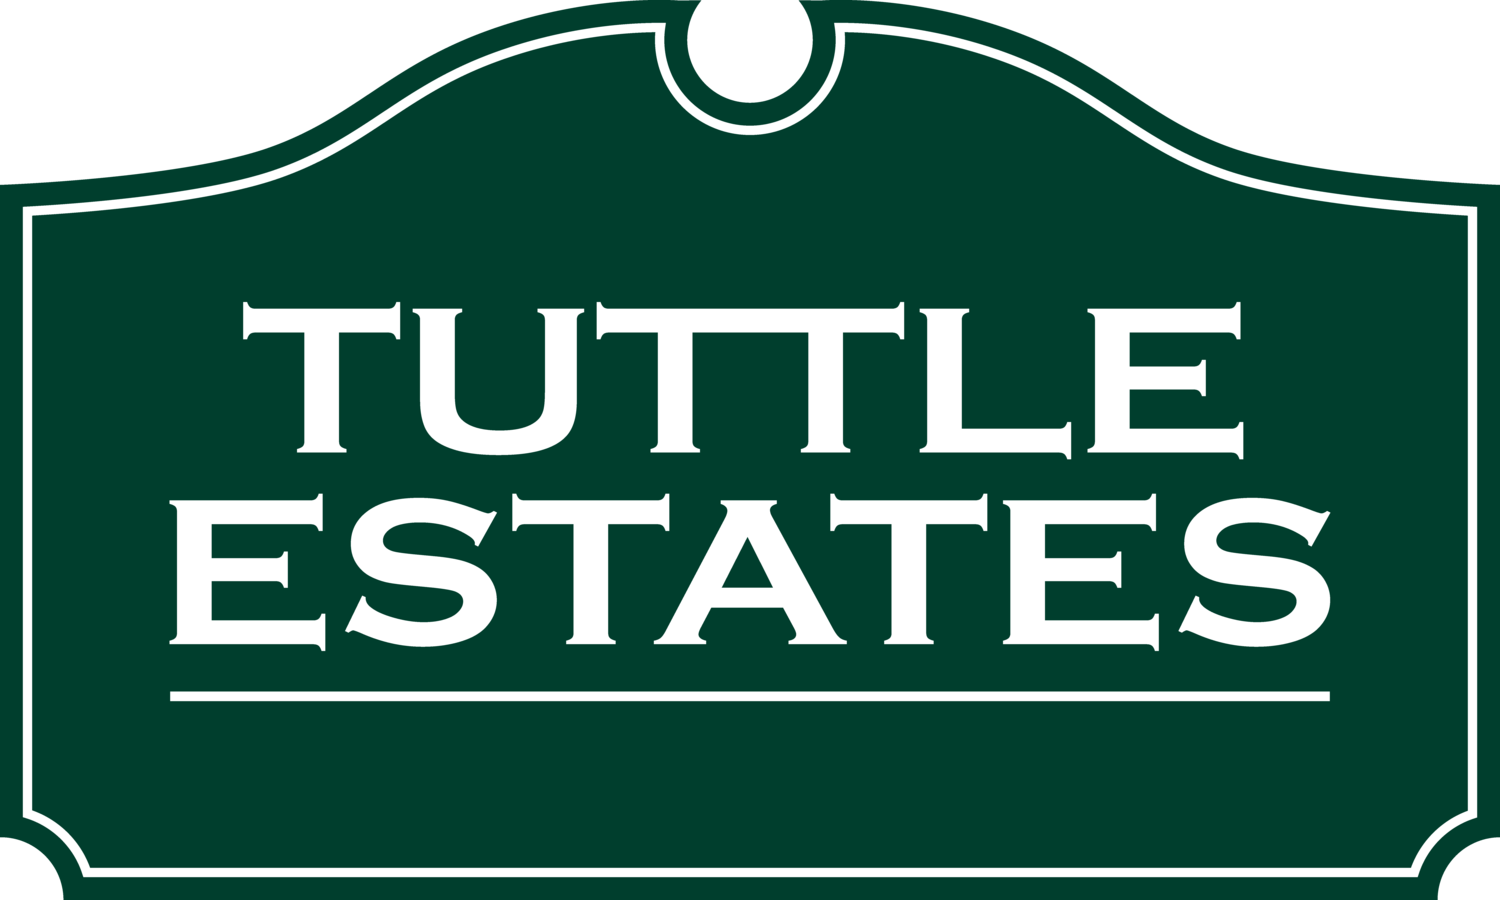 Tuttle Estates